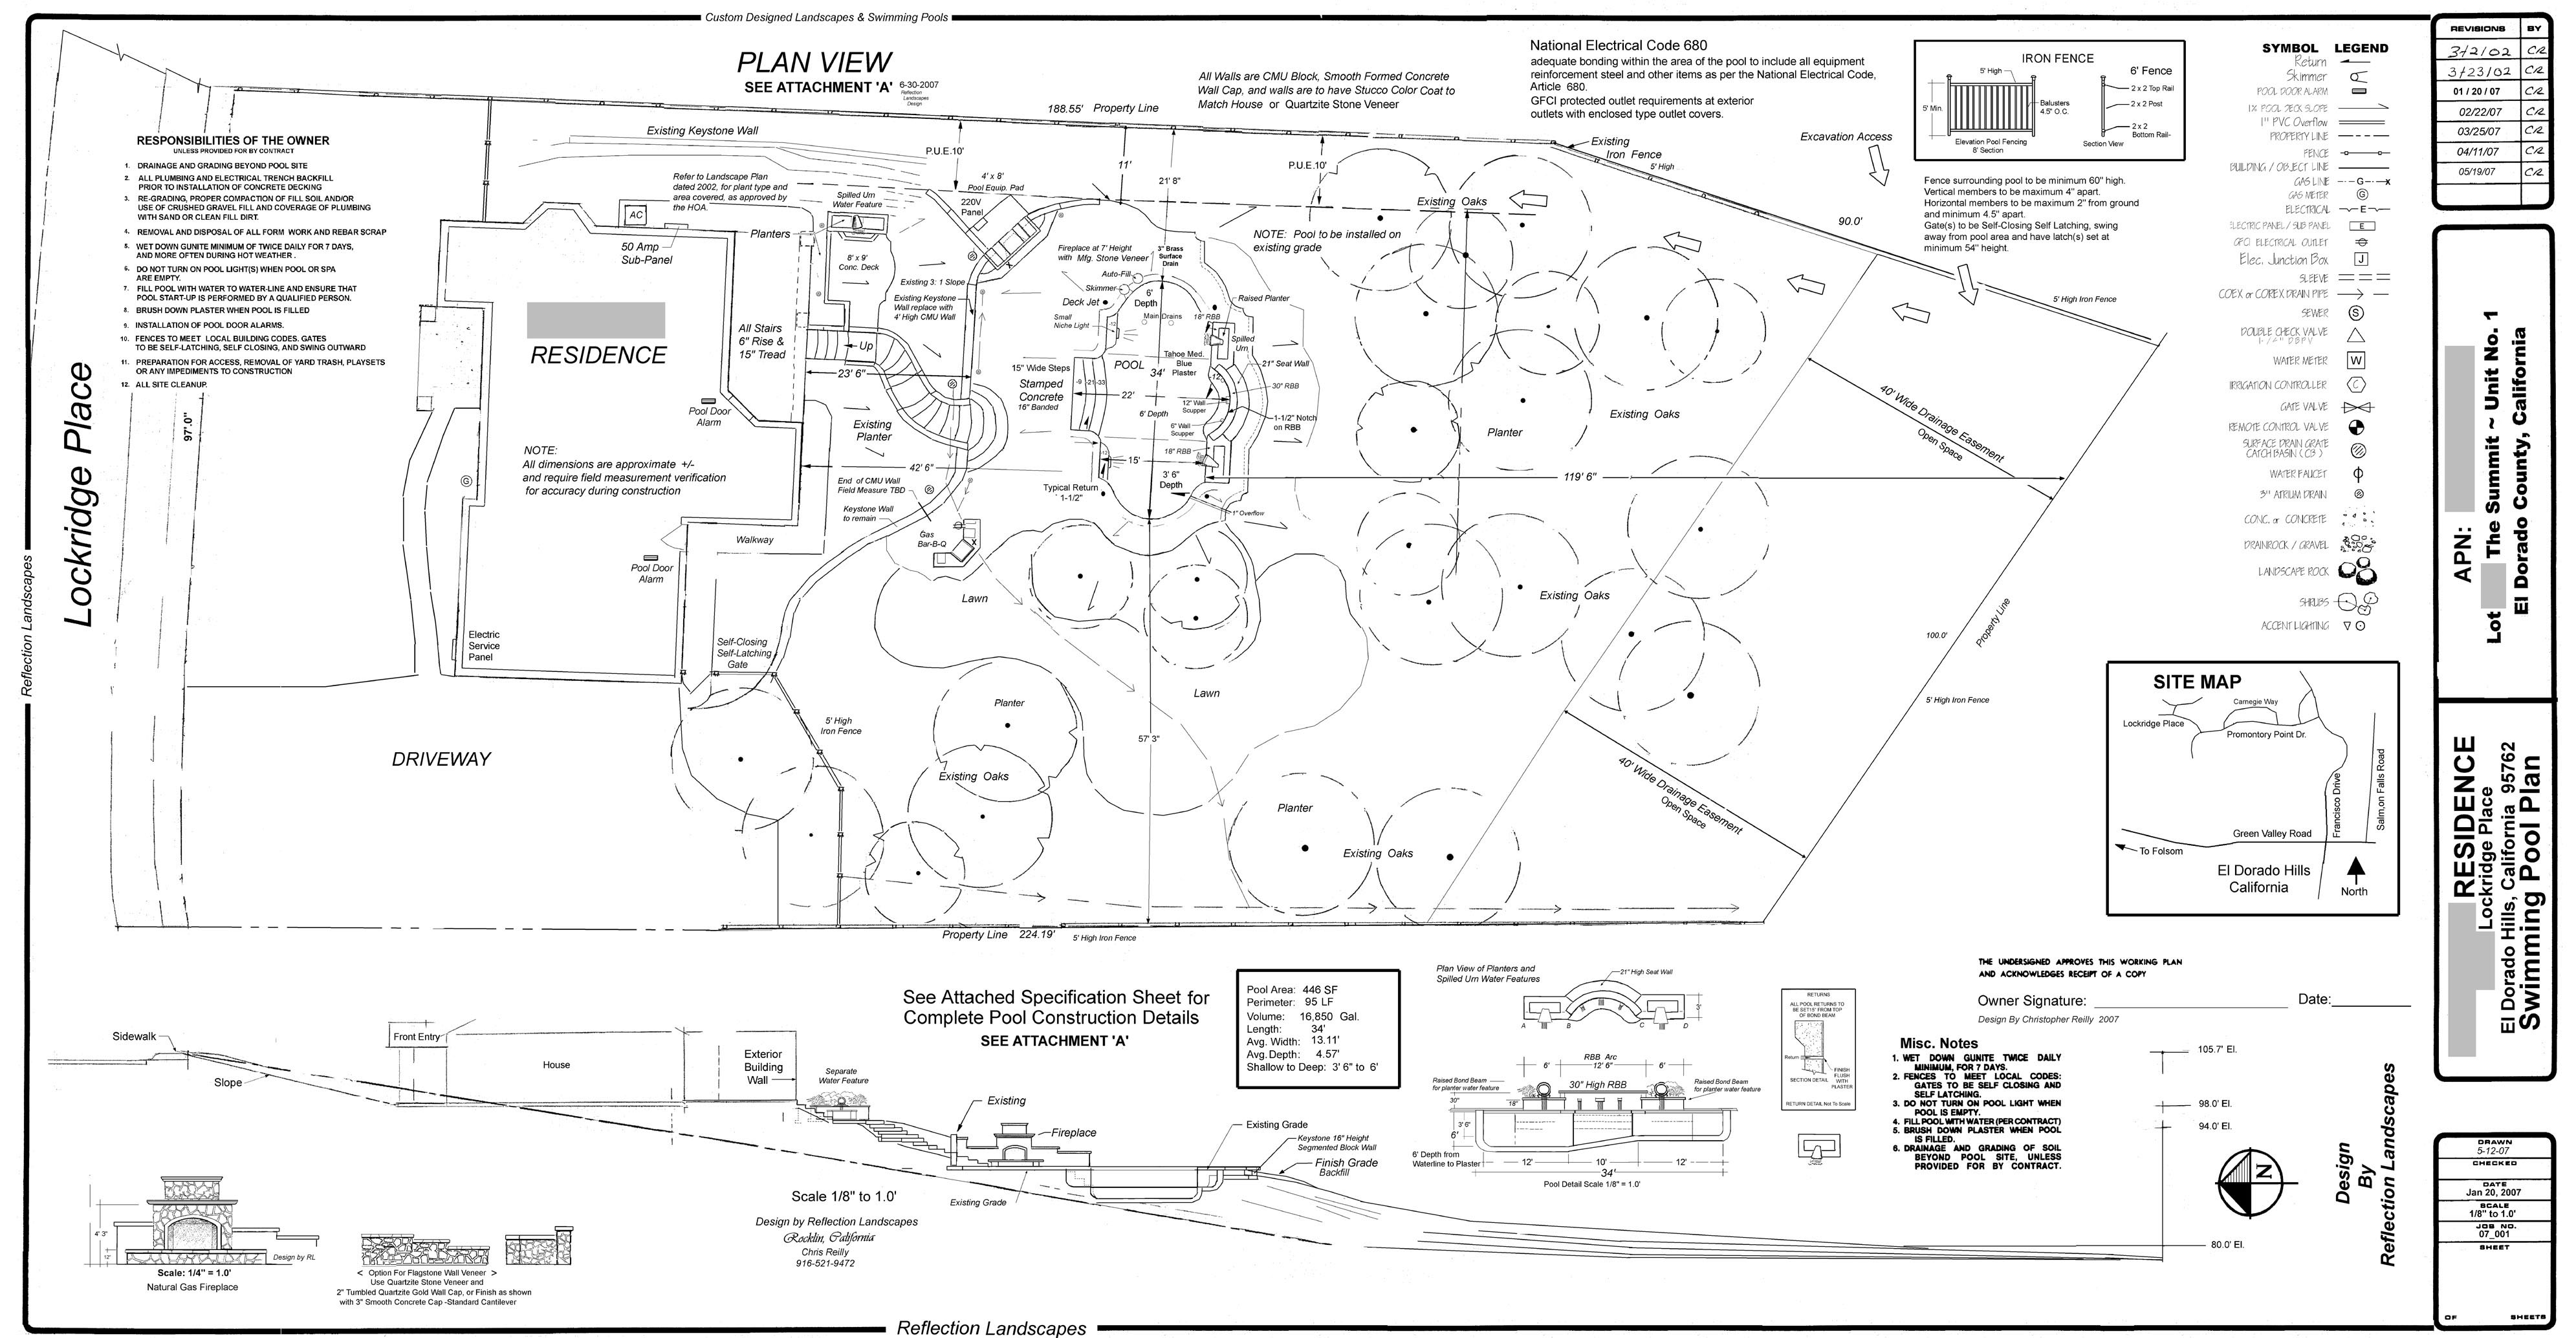 Swimming Pool Blueprints interesting swimming pool blueprints plans l to design decorating